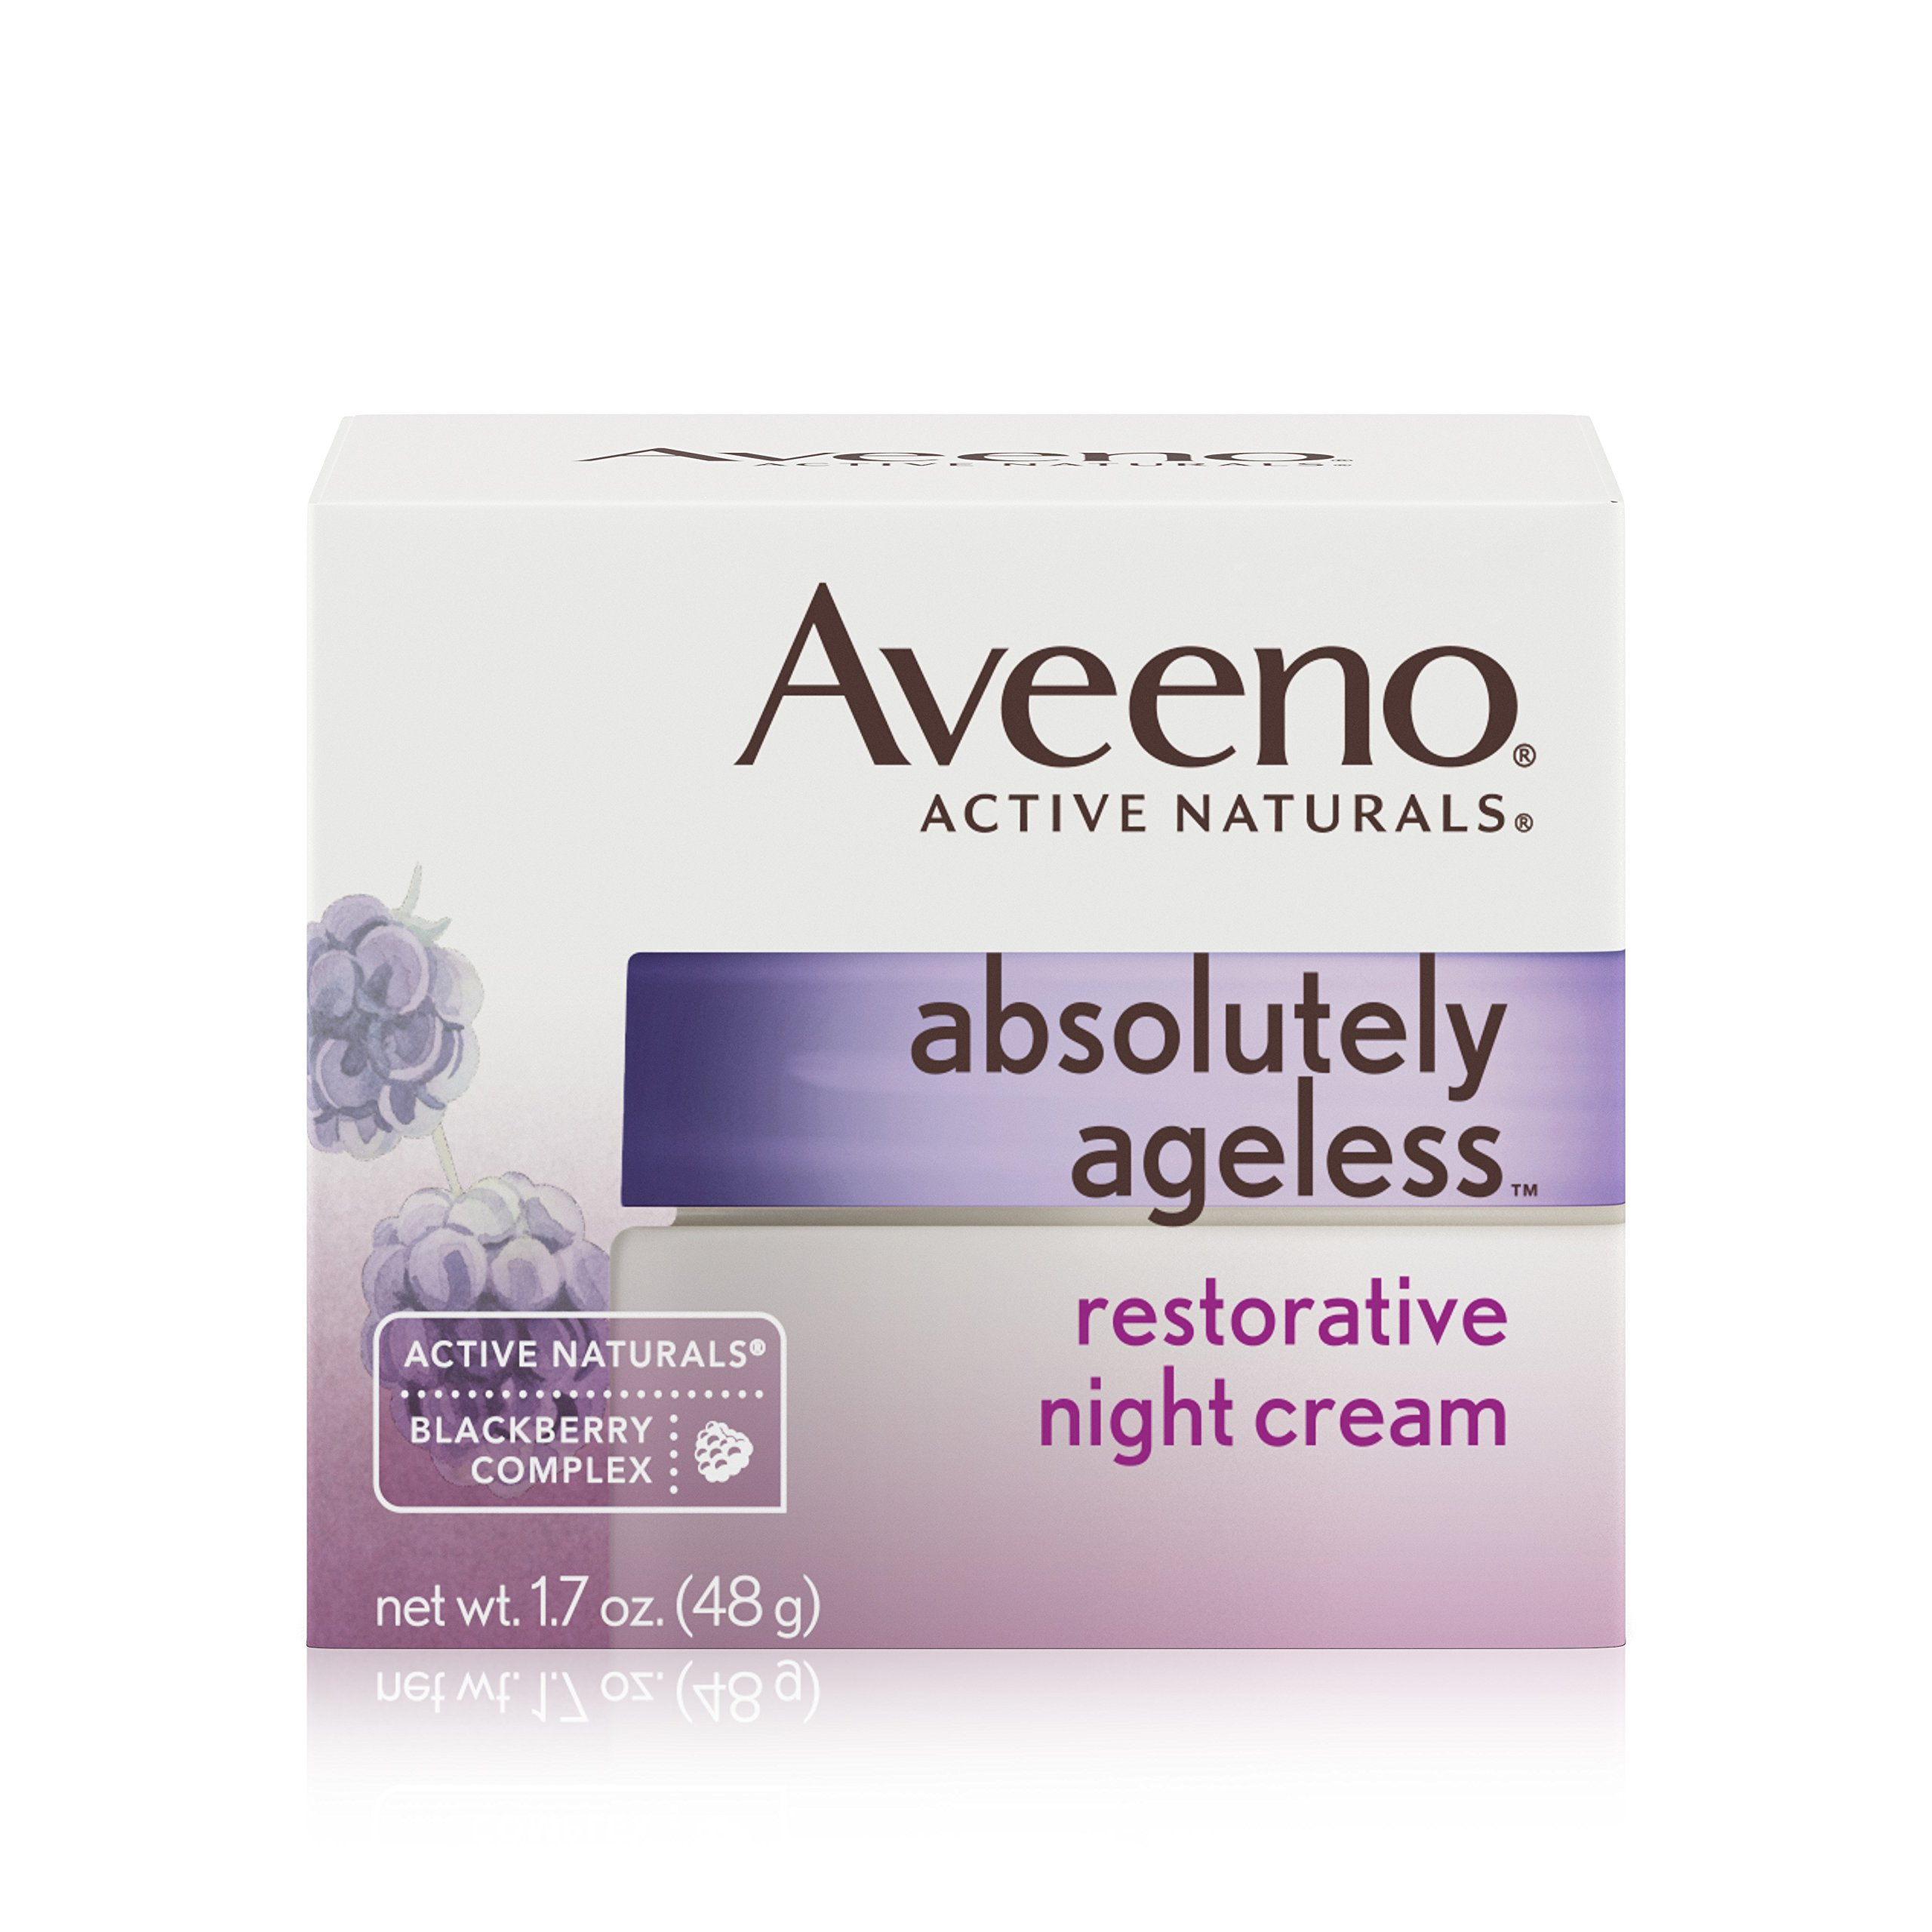 Aveeno Active Naturals Absolutely Ageless Nourishing Cleanser, 5.2 oz, 6 Pack 3 Pack - PURPOSE Cleansing Bar 3.60 oz